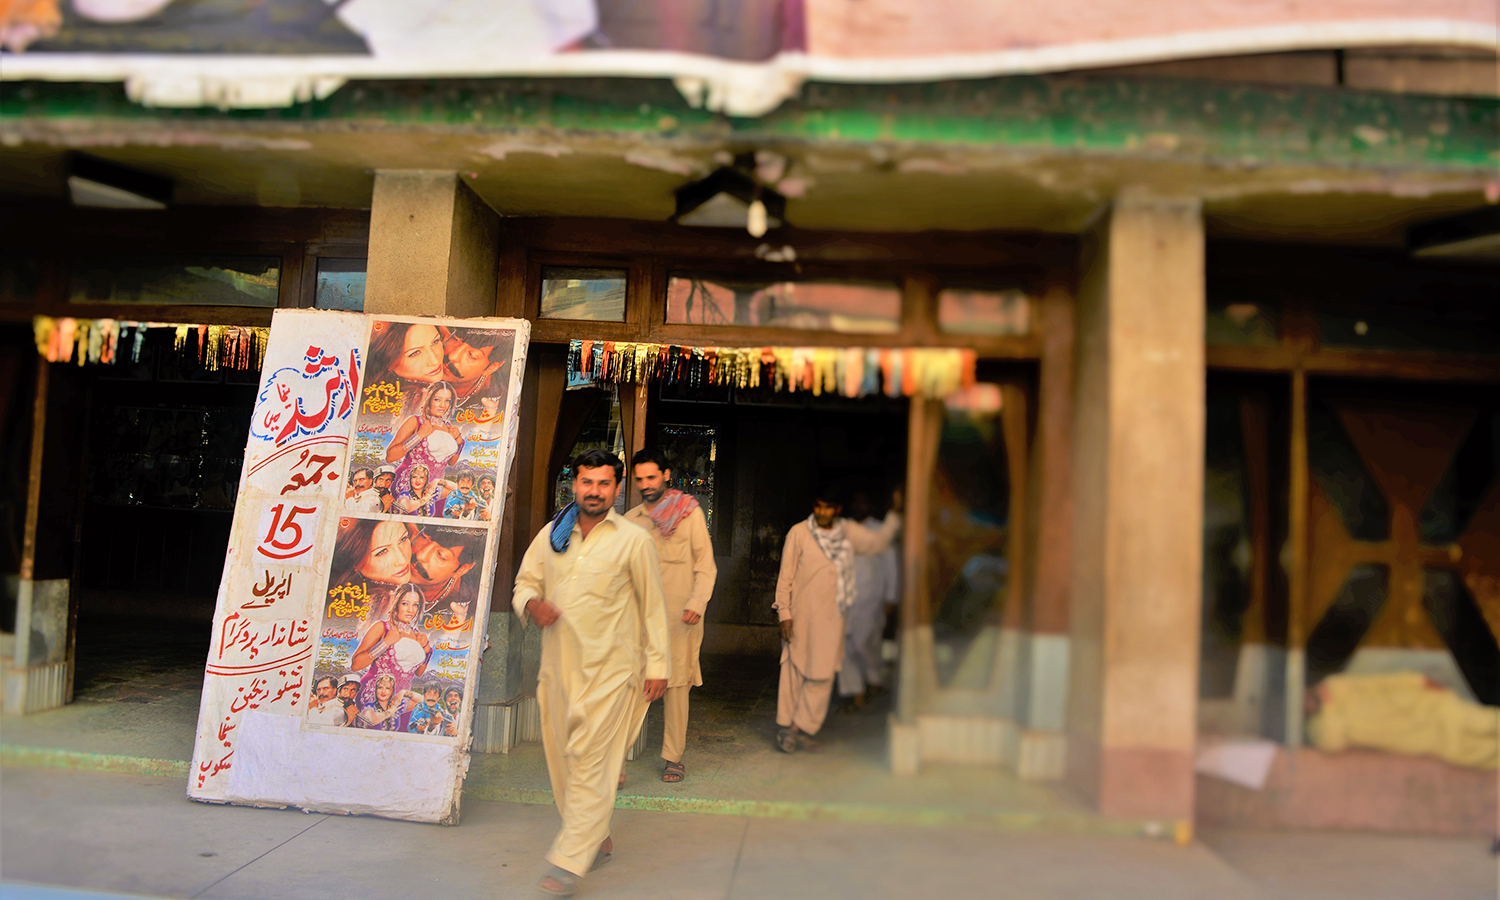 A man walks out of Peshawar's Arshad Cinema — Photo by author